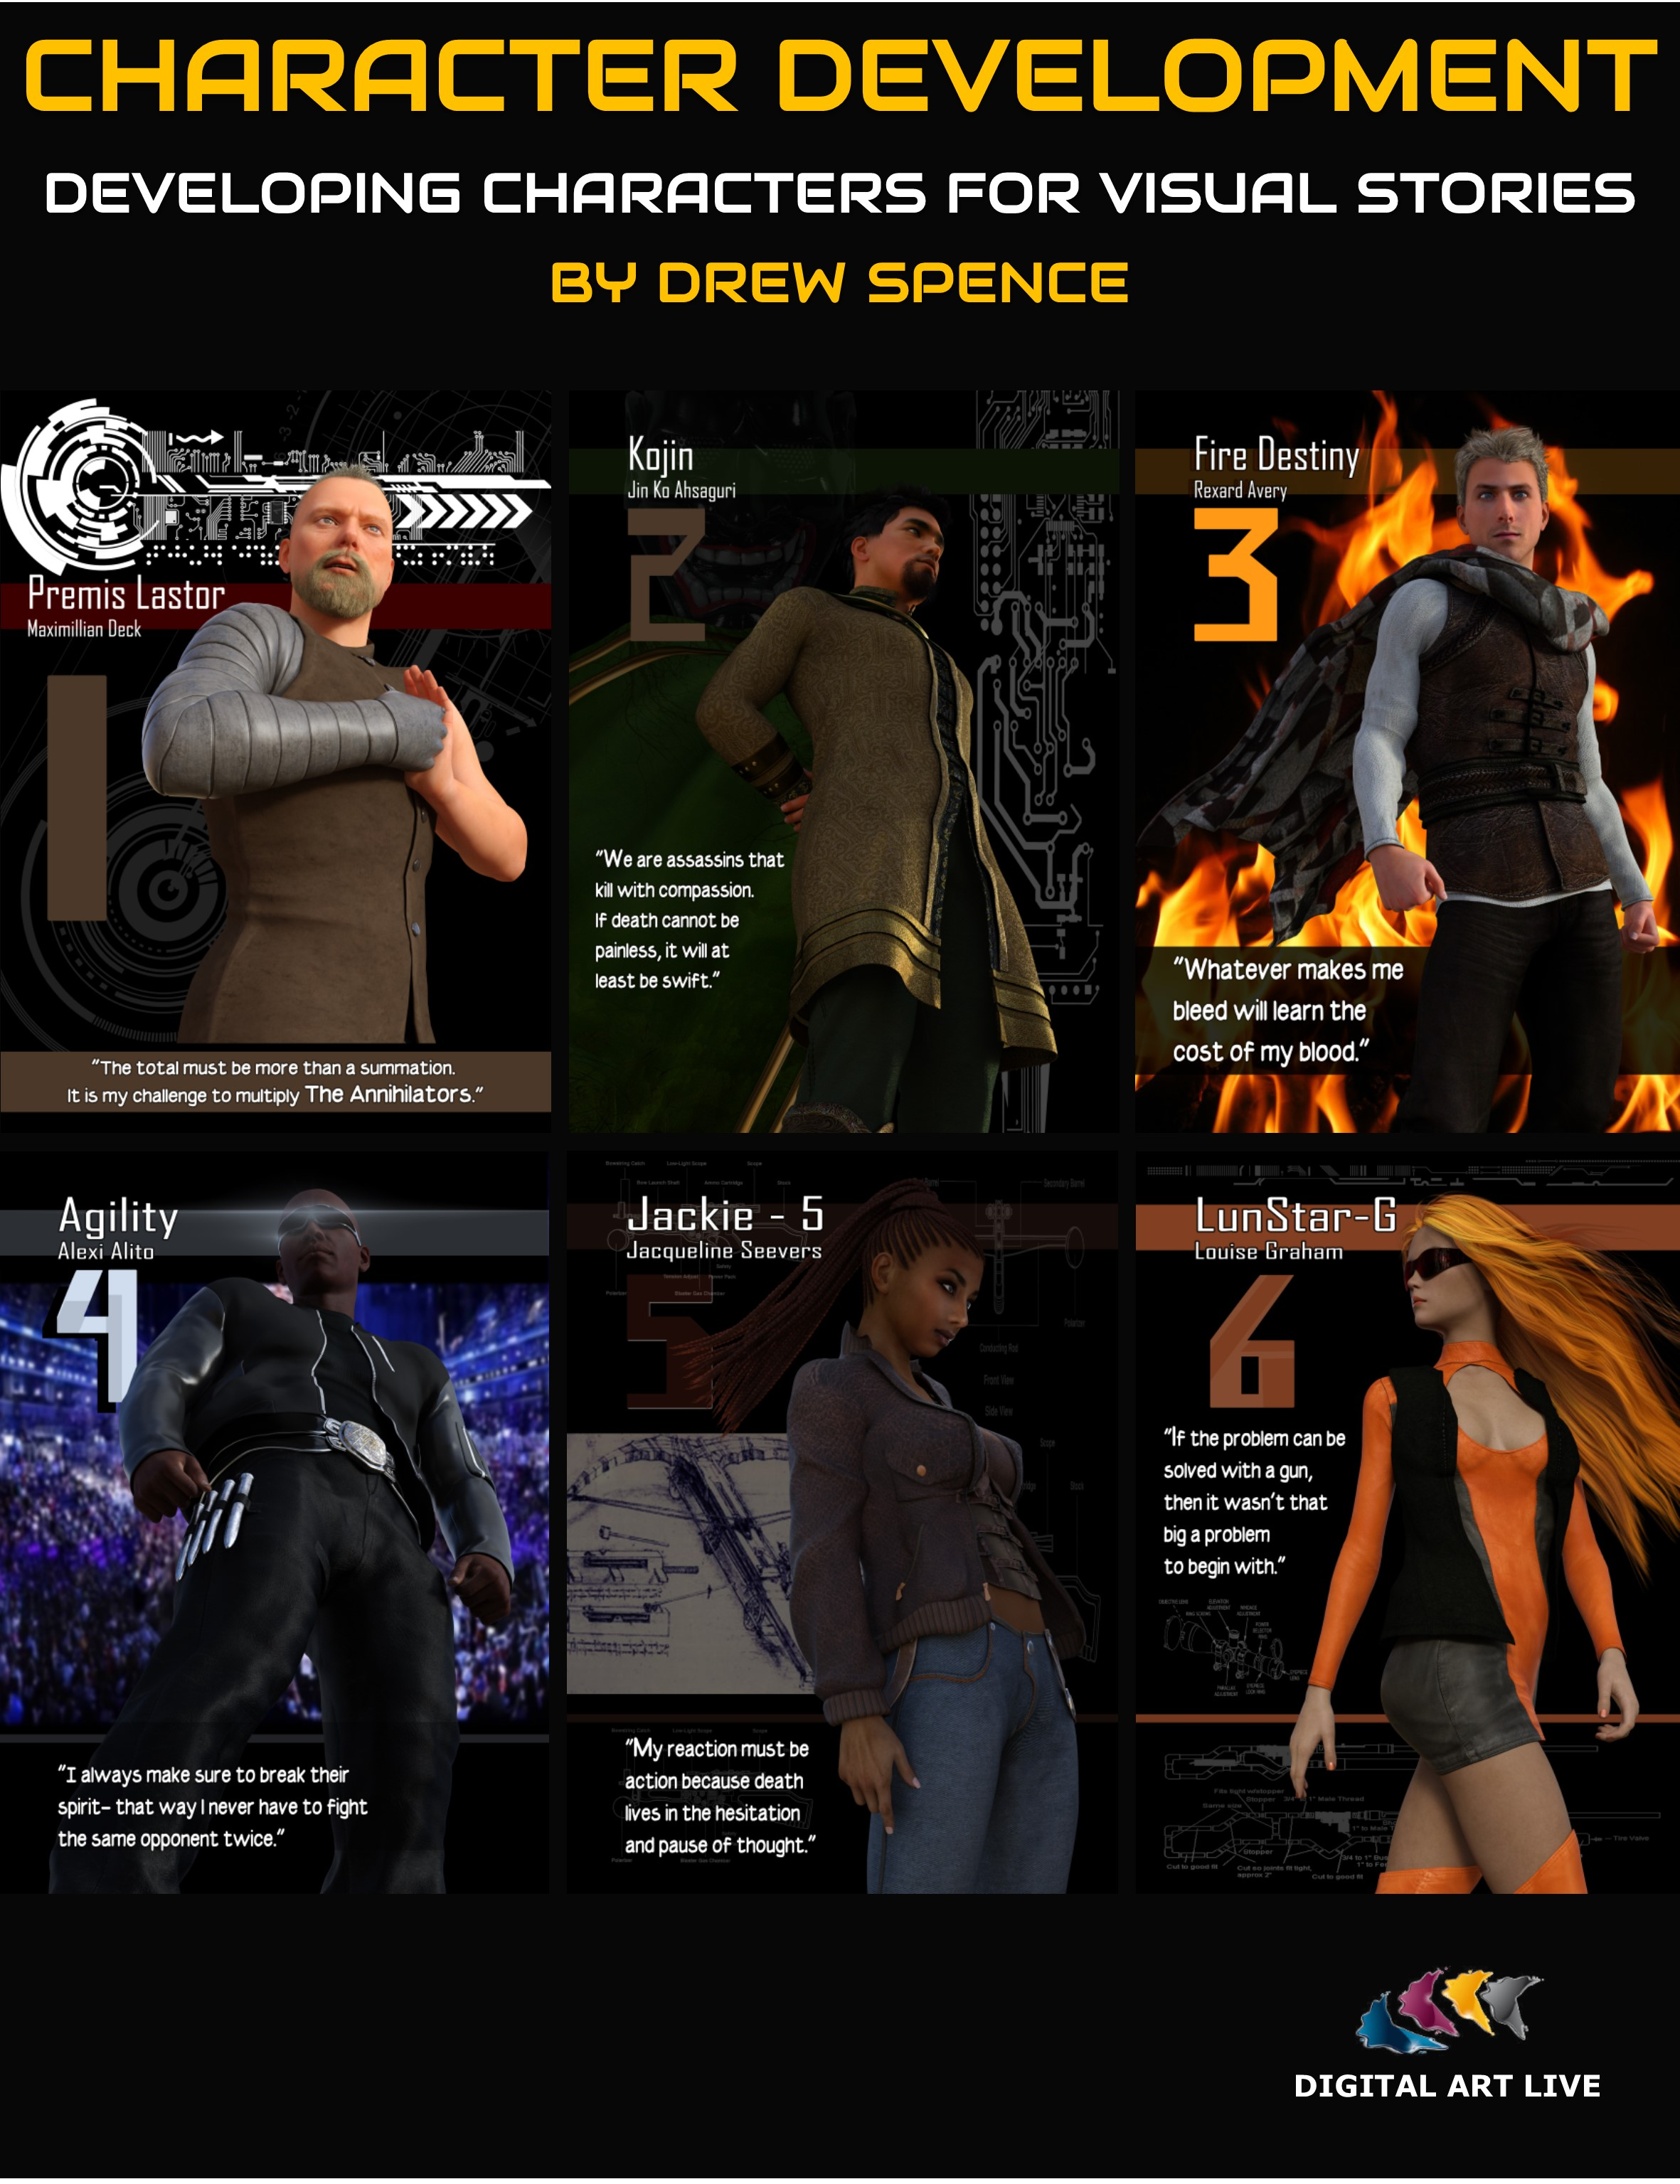 Character Development for Visual Stories by: Digital Art Live, 3D Models by Daz 3D